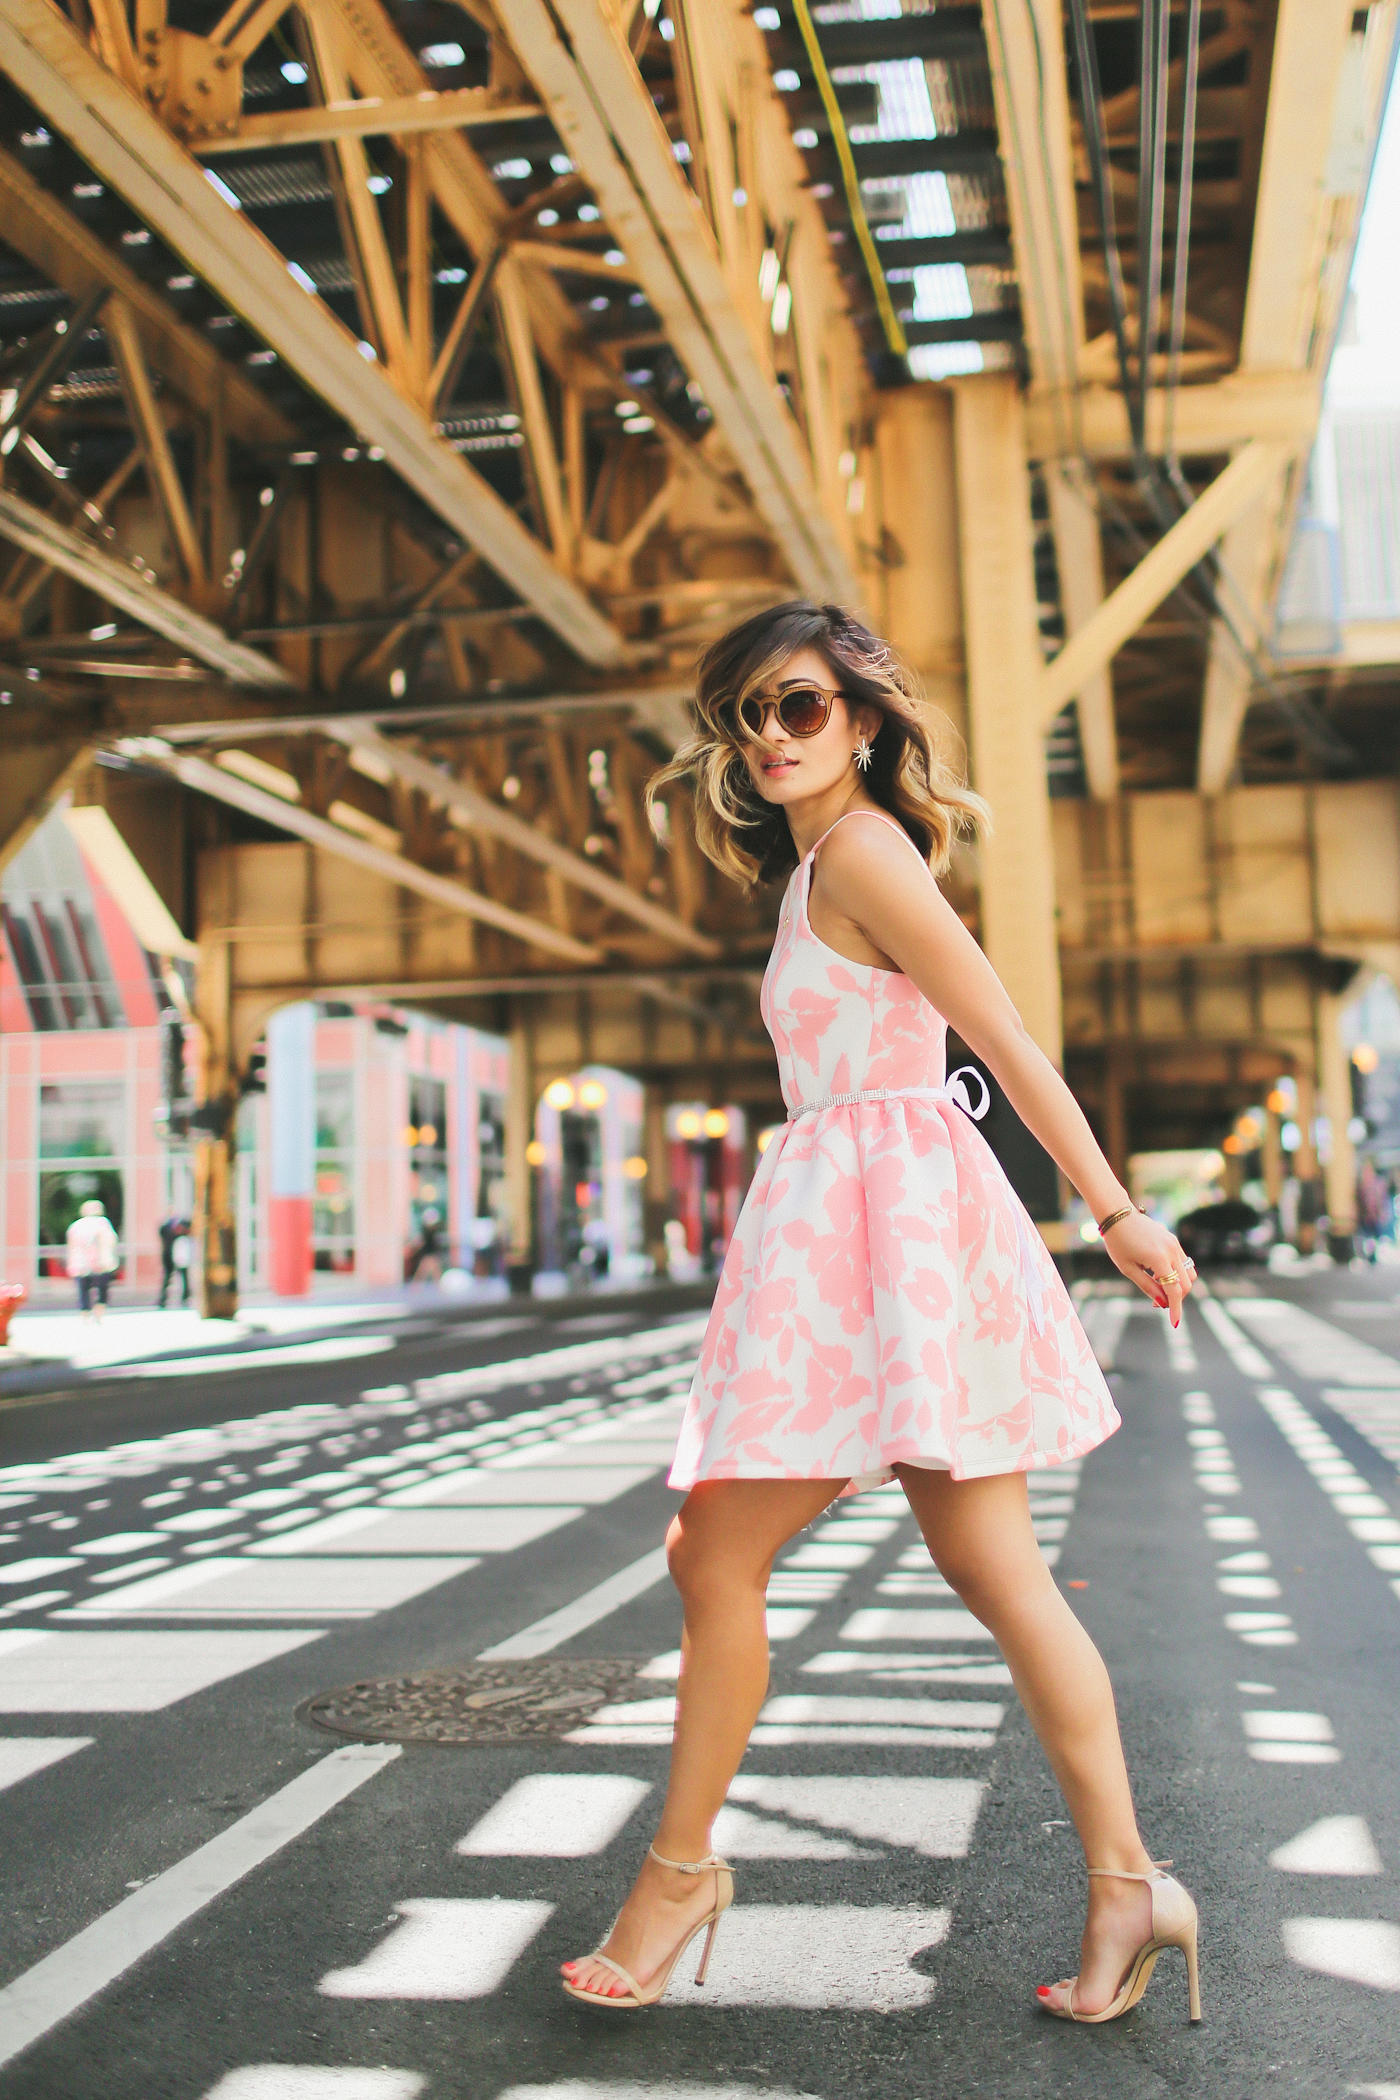 PINK FLORAL DRESS VIA GENERATION BLISS